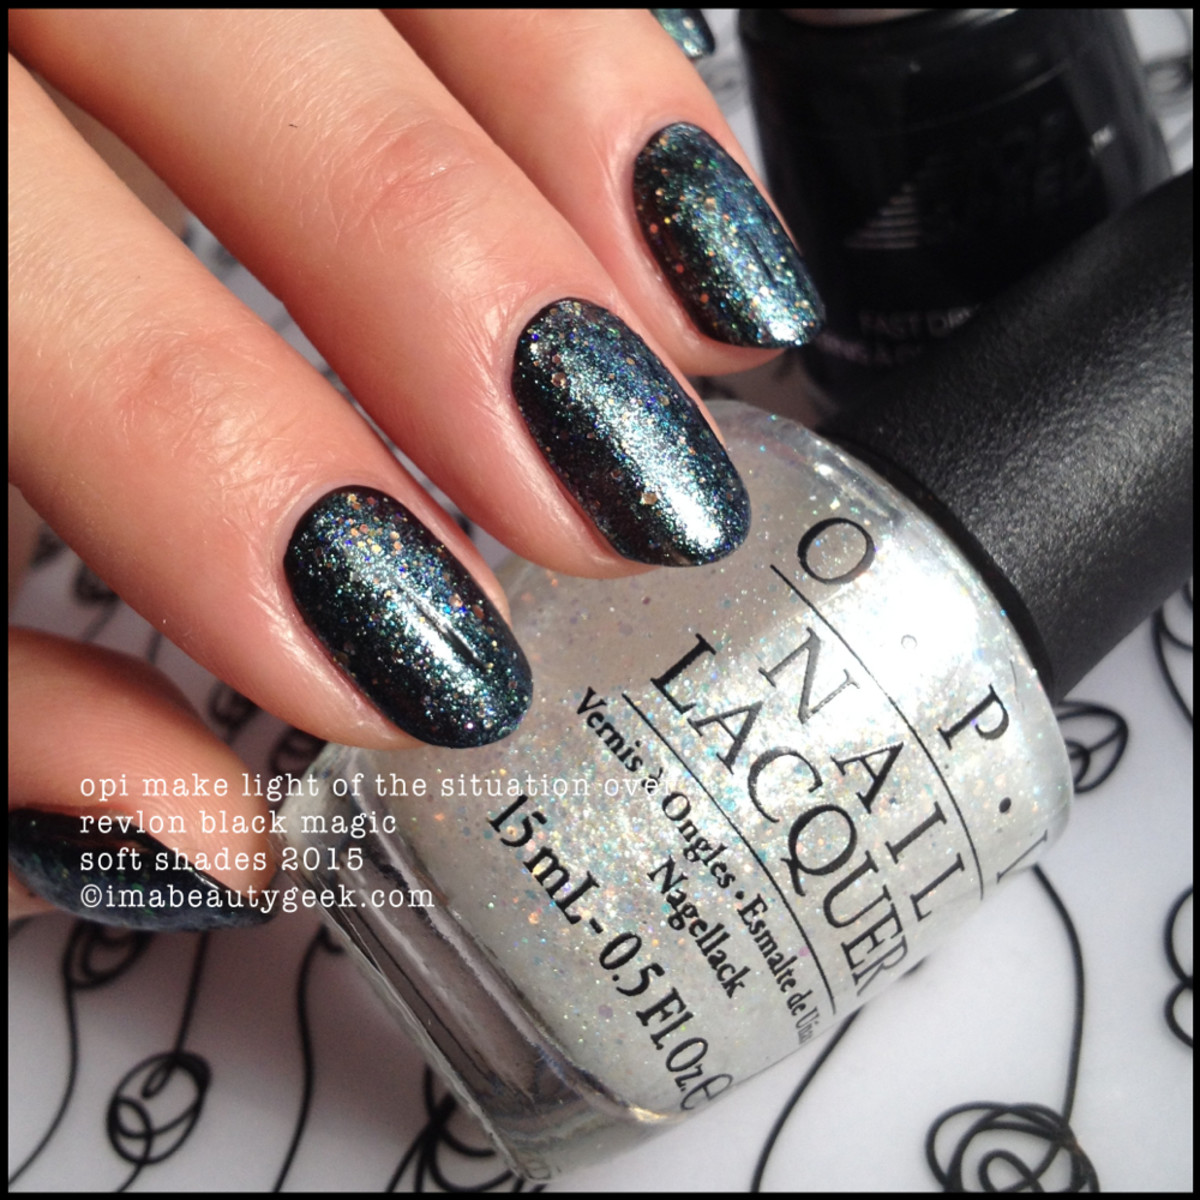 OPI Make Light of the Situation OPI Soft Shades 2015